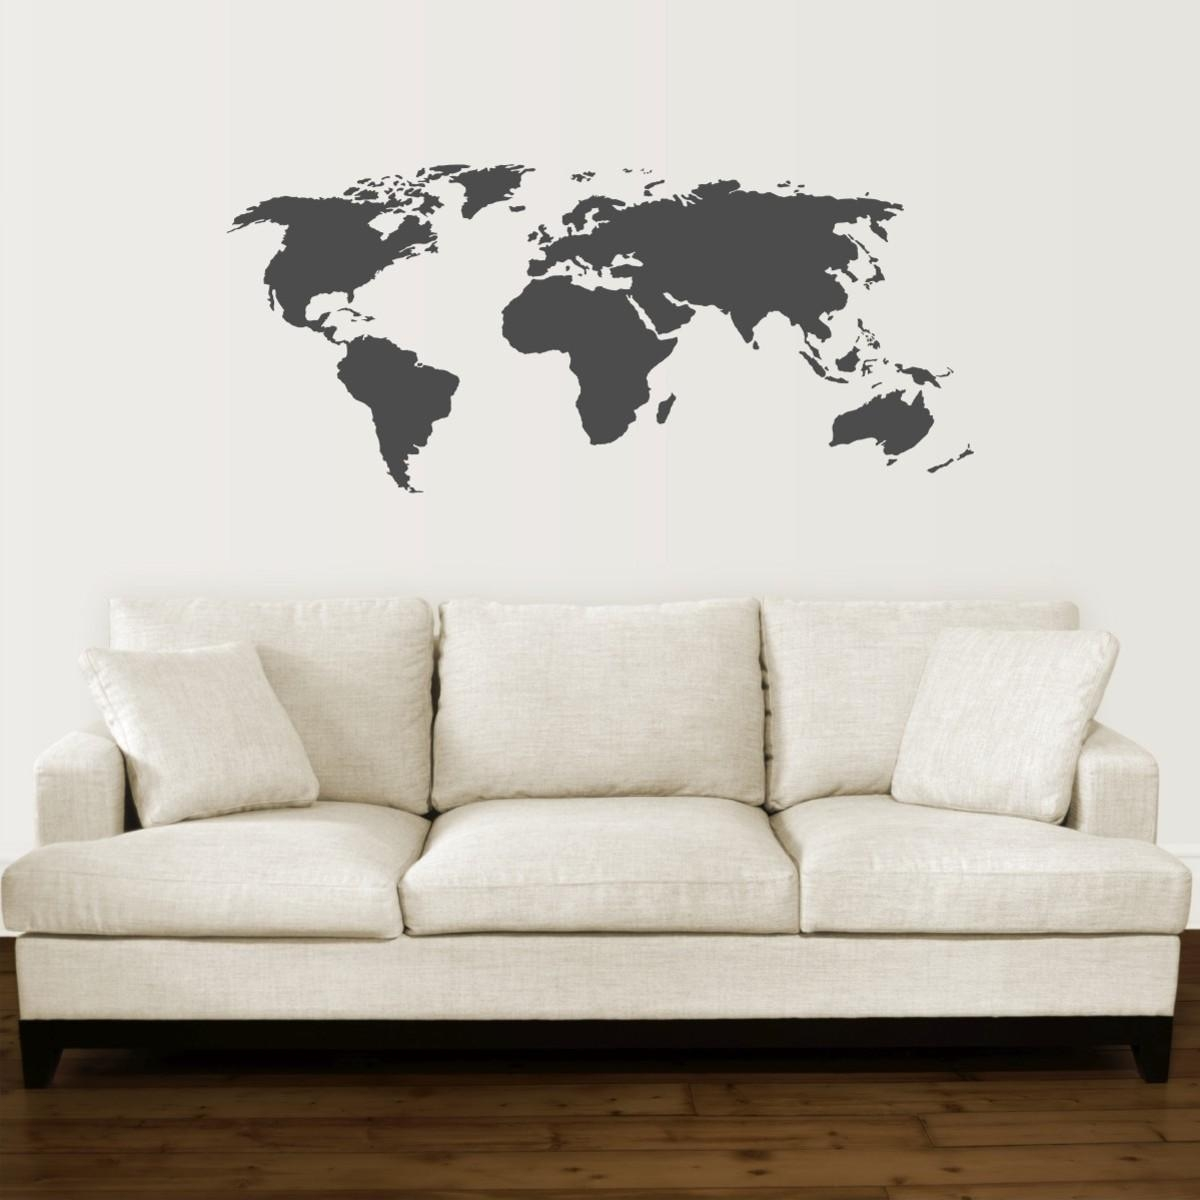 World Map Wall Quotes™ Wall Art Decal | Wallquotes Regarding Maps For Wall Art (View 11 of 20)